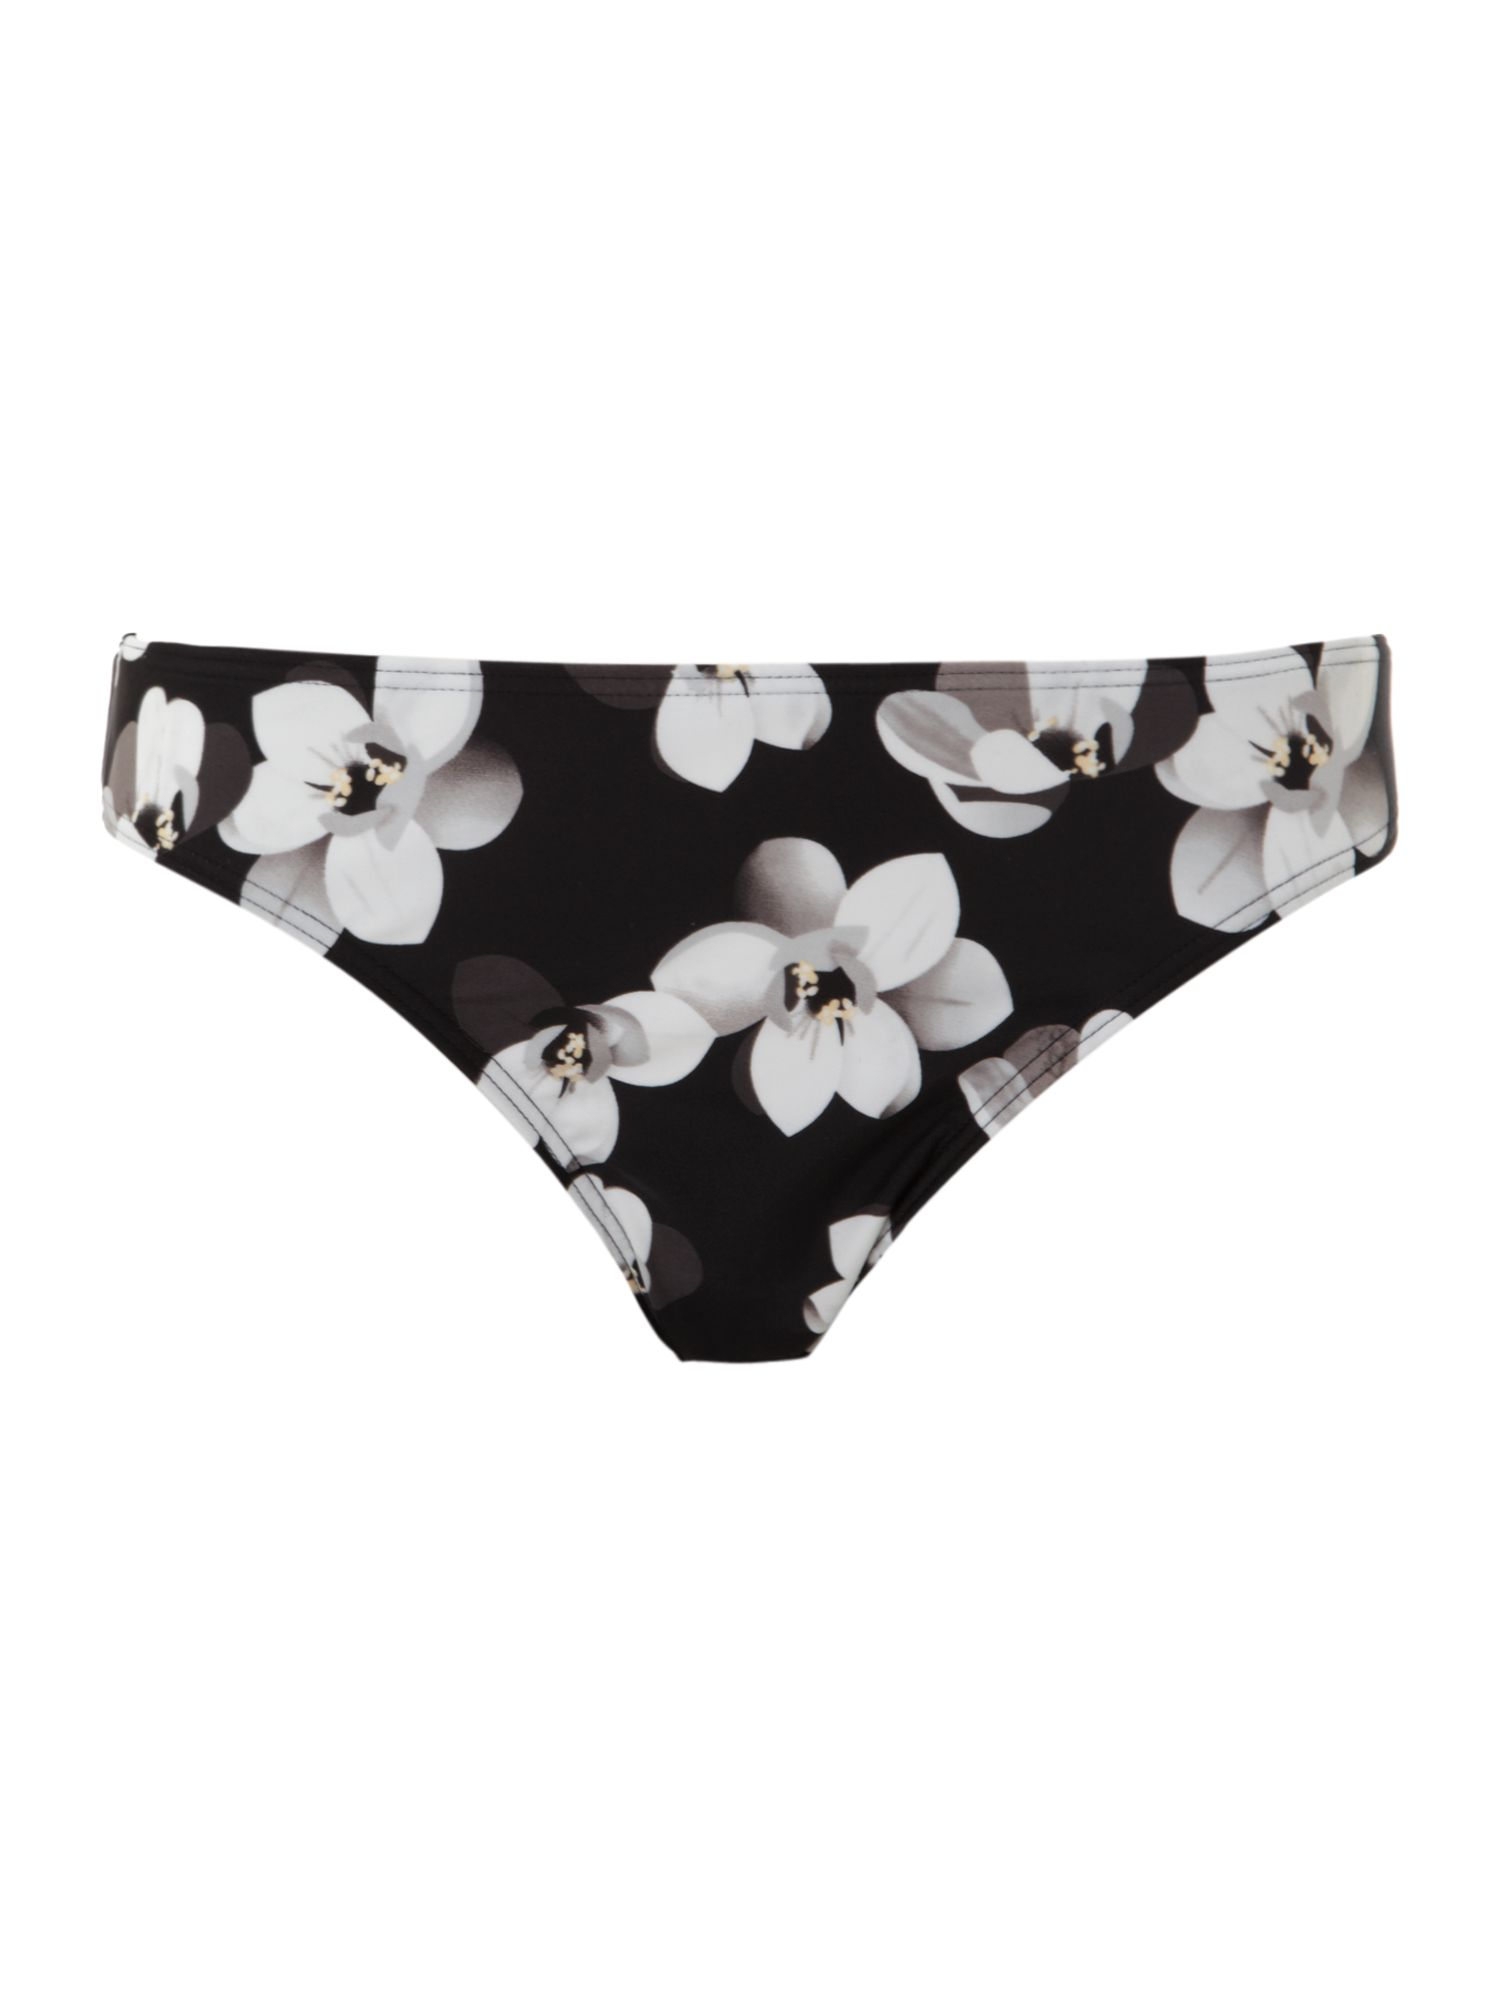 Magnolia brief